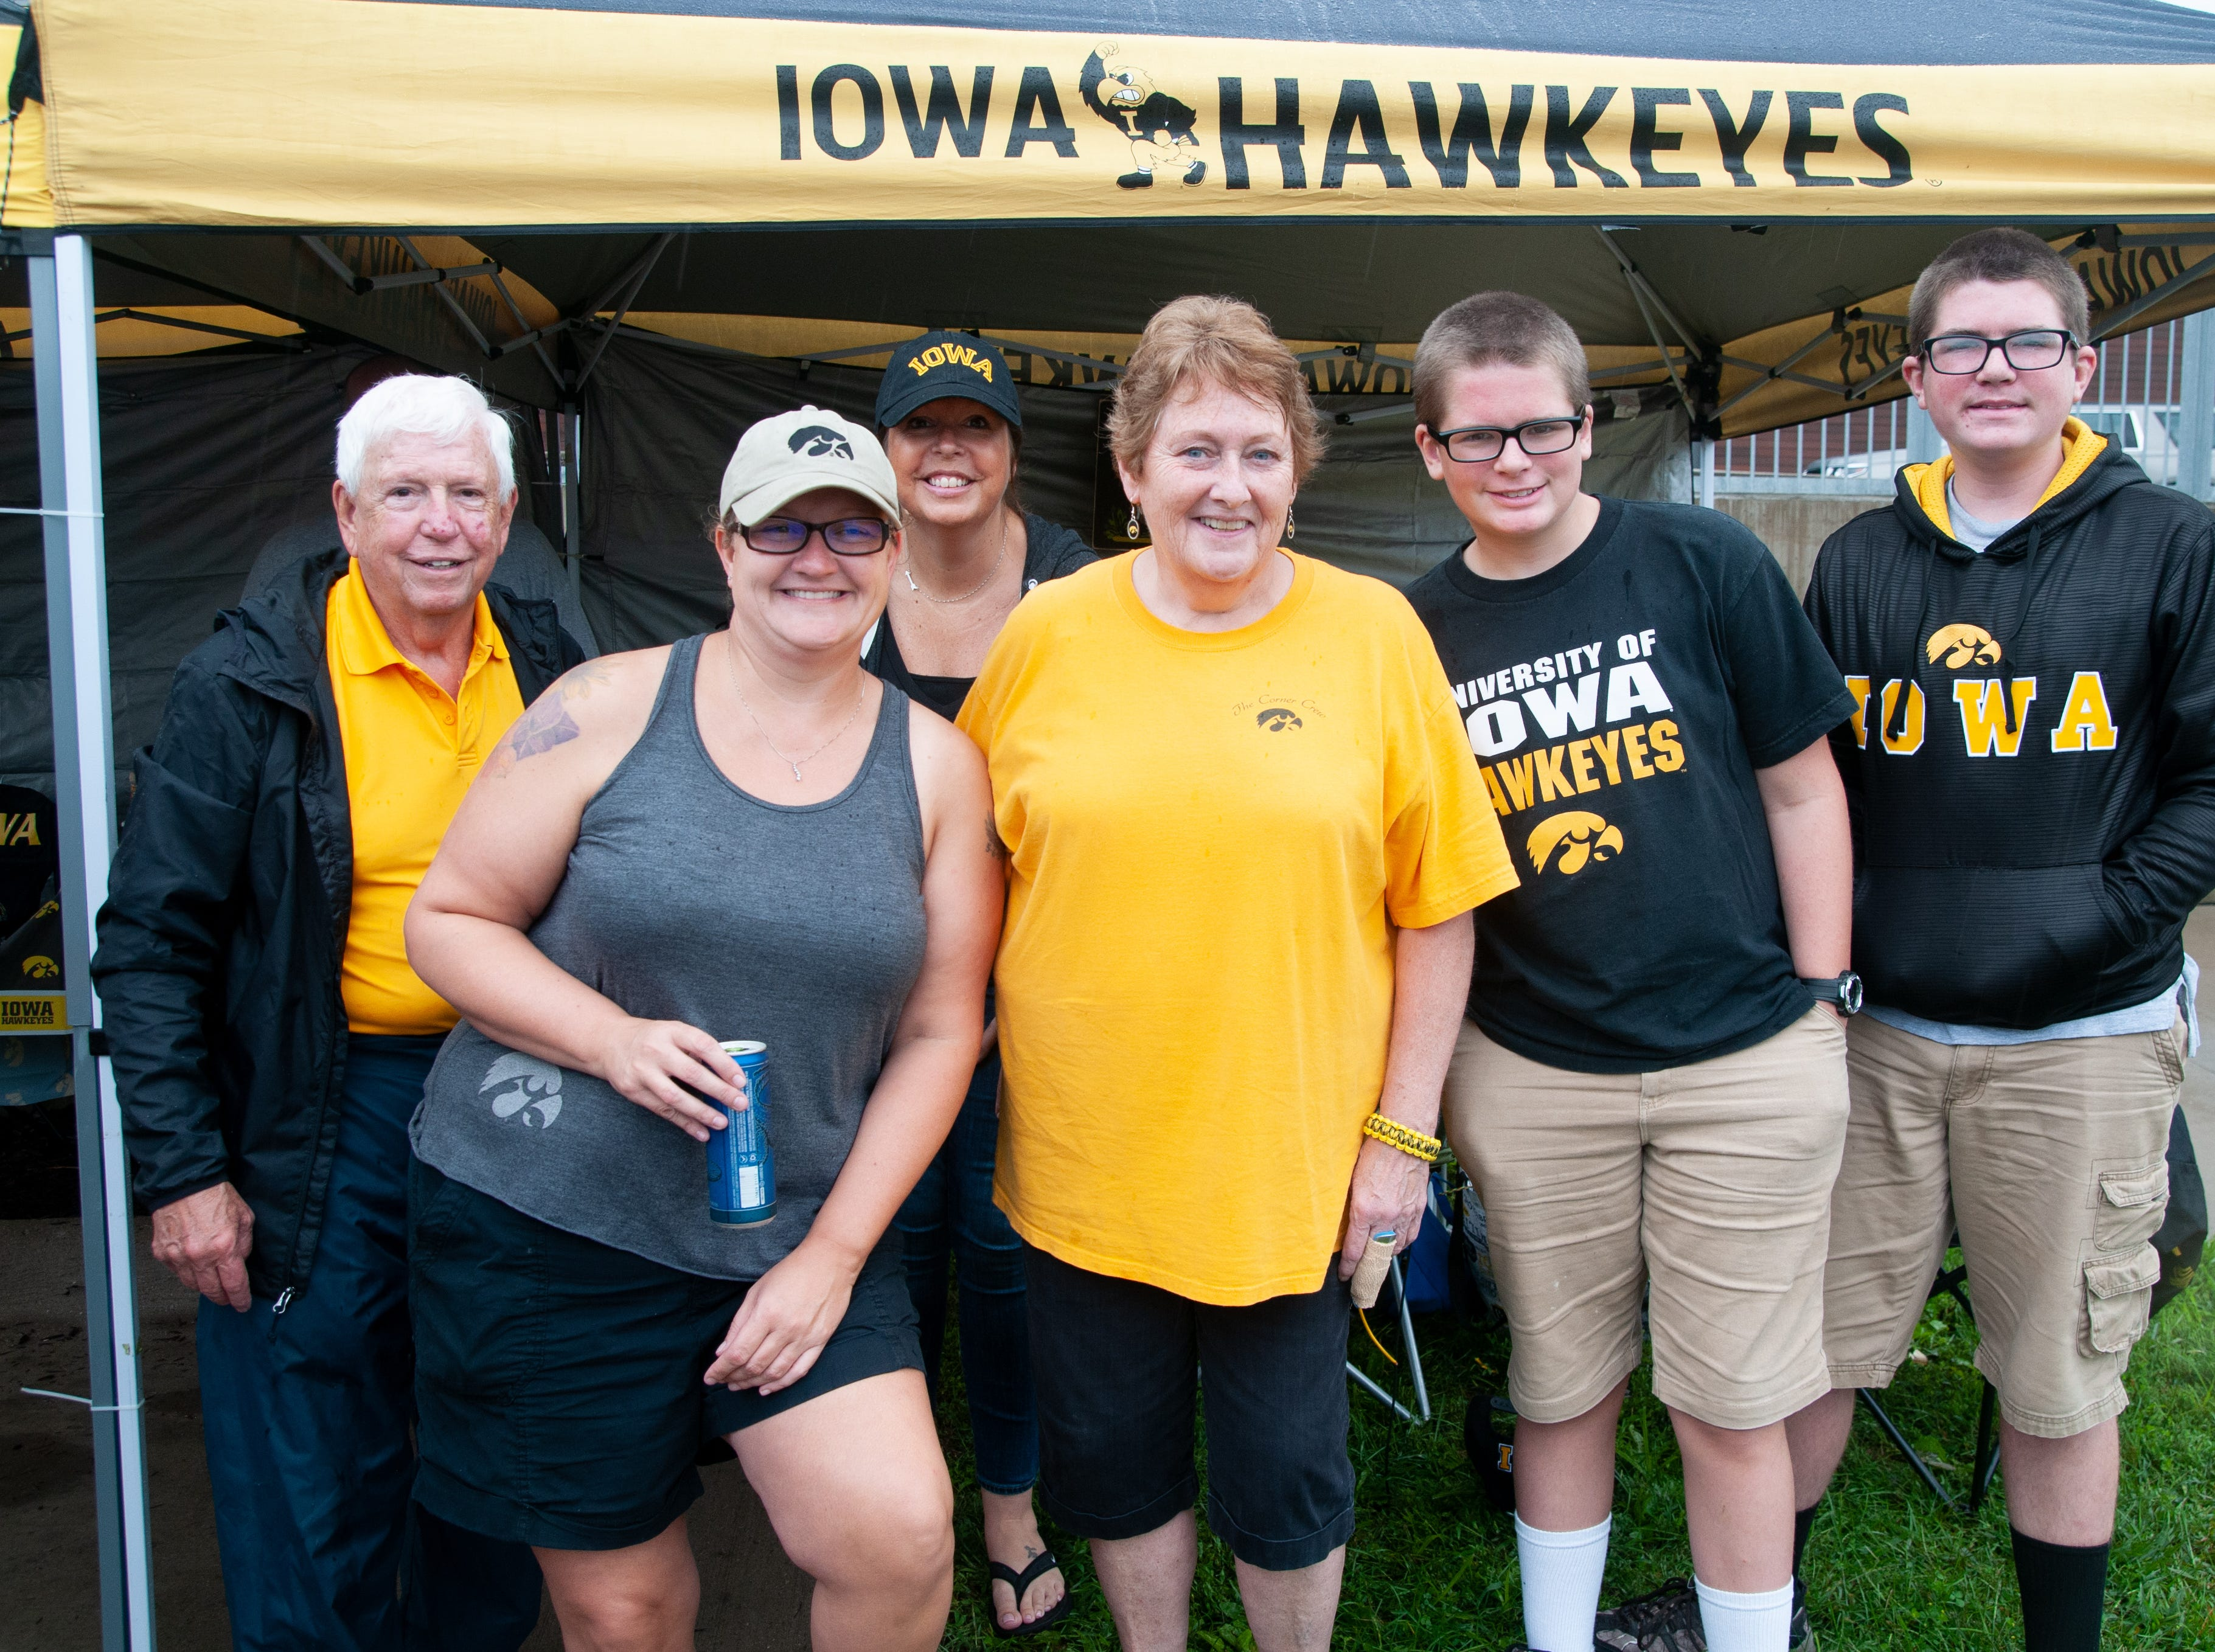 The Yeggy, Bower, Jenkins and Tenborg families, of Delano and Iowa City, Saturday, Sept. 1, 2018, while tailgating before the Iowa game against Northern Illinois in Iowa City.